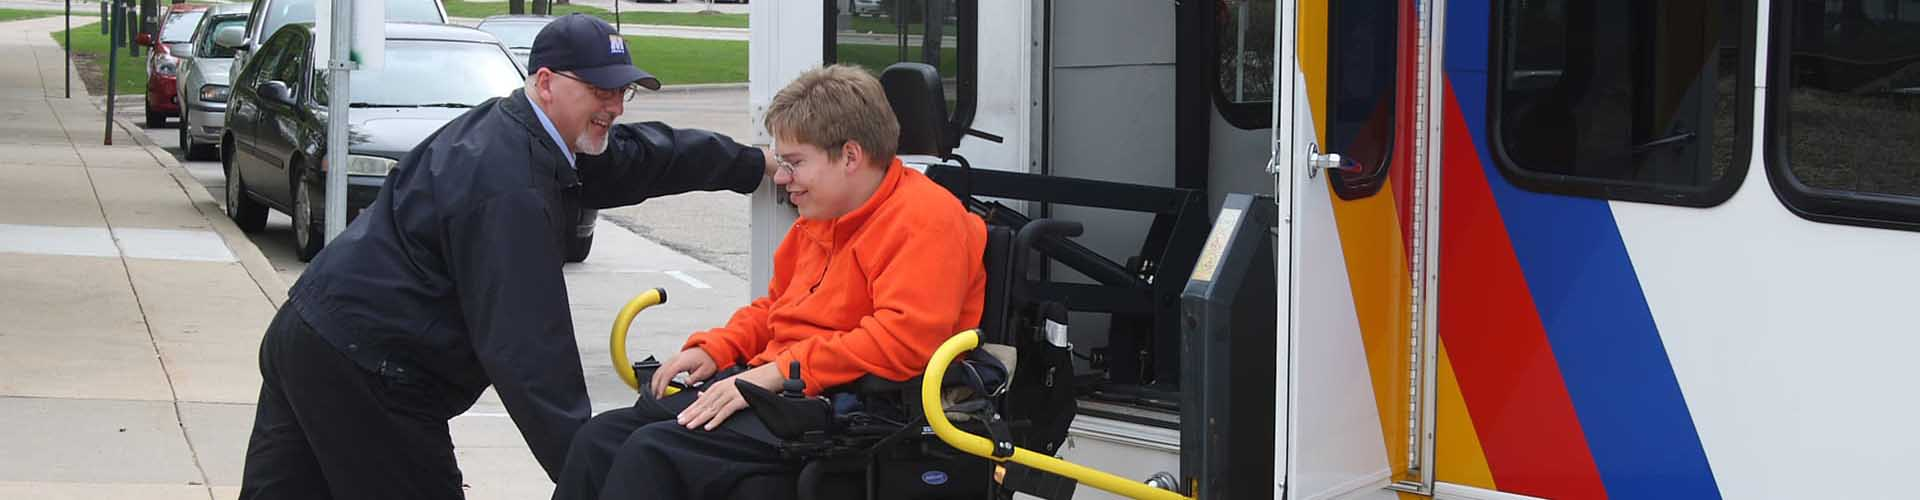 Driver assists passenger in wheelchair de-board transit vehicle